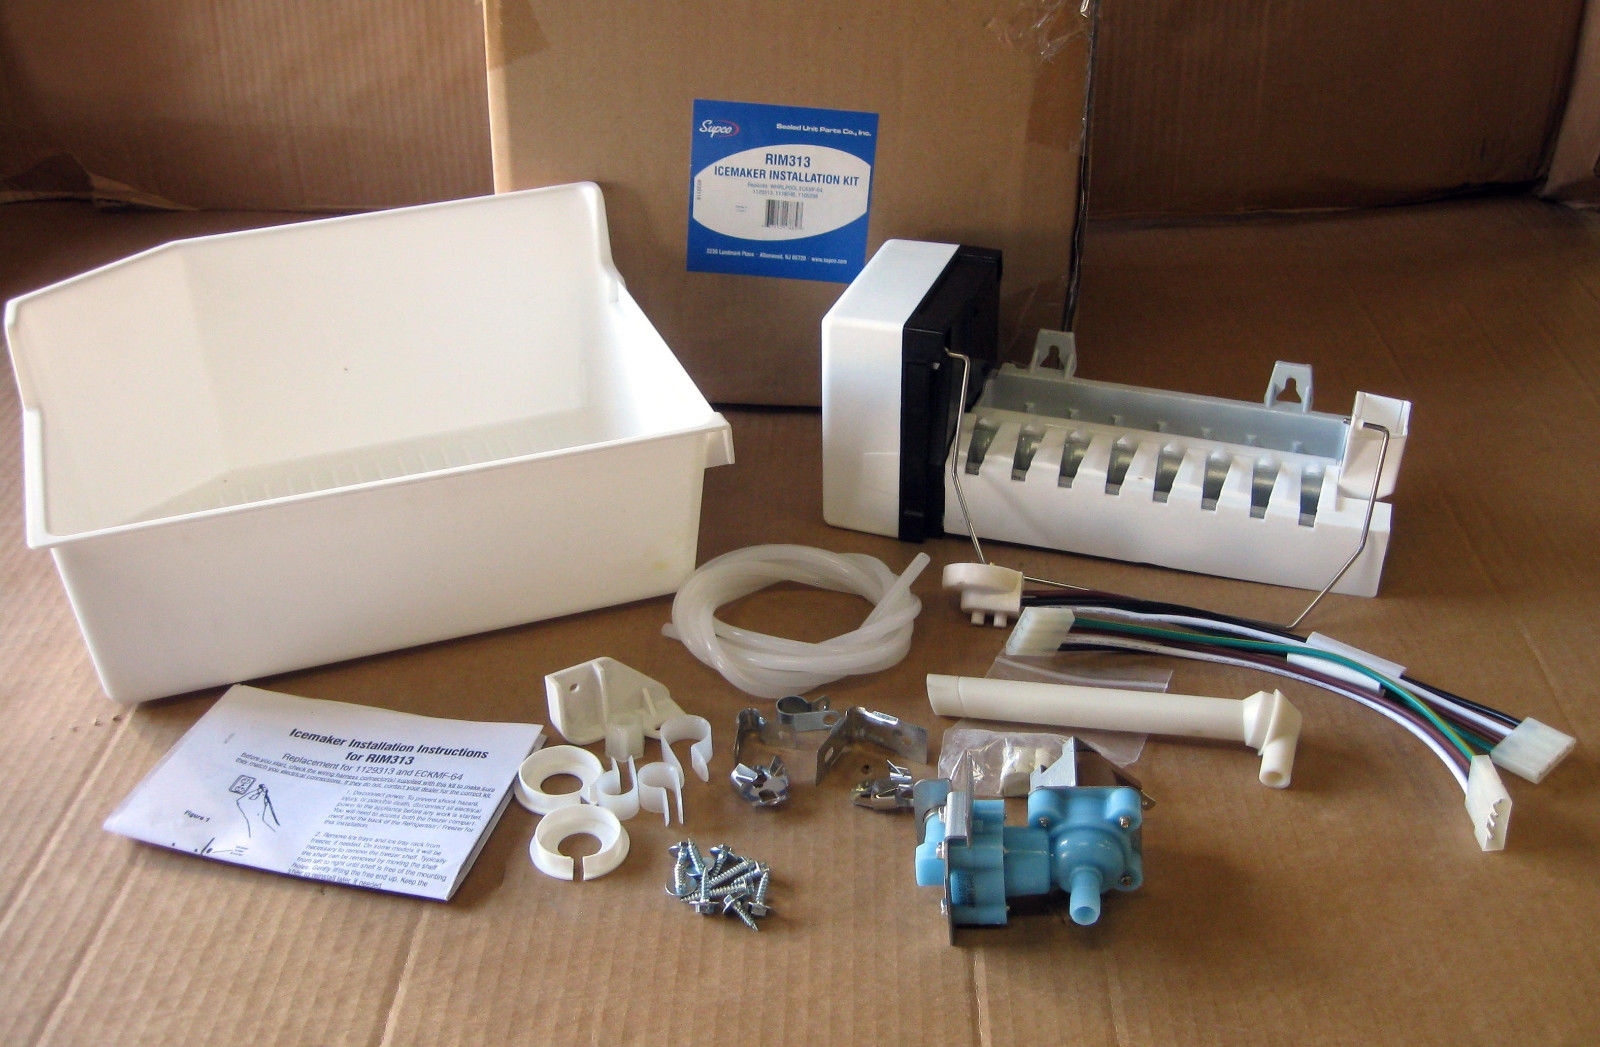 Rim313 For Whirlpool Ice Maker Refrigerator Icemaker Kit